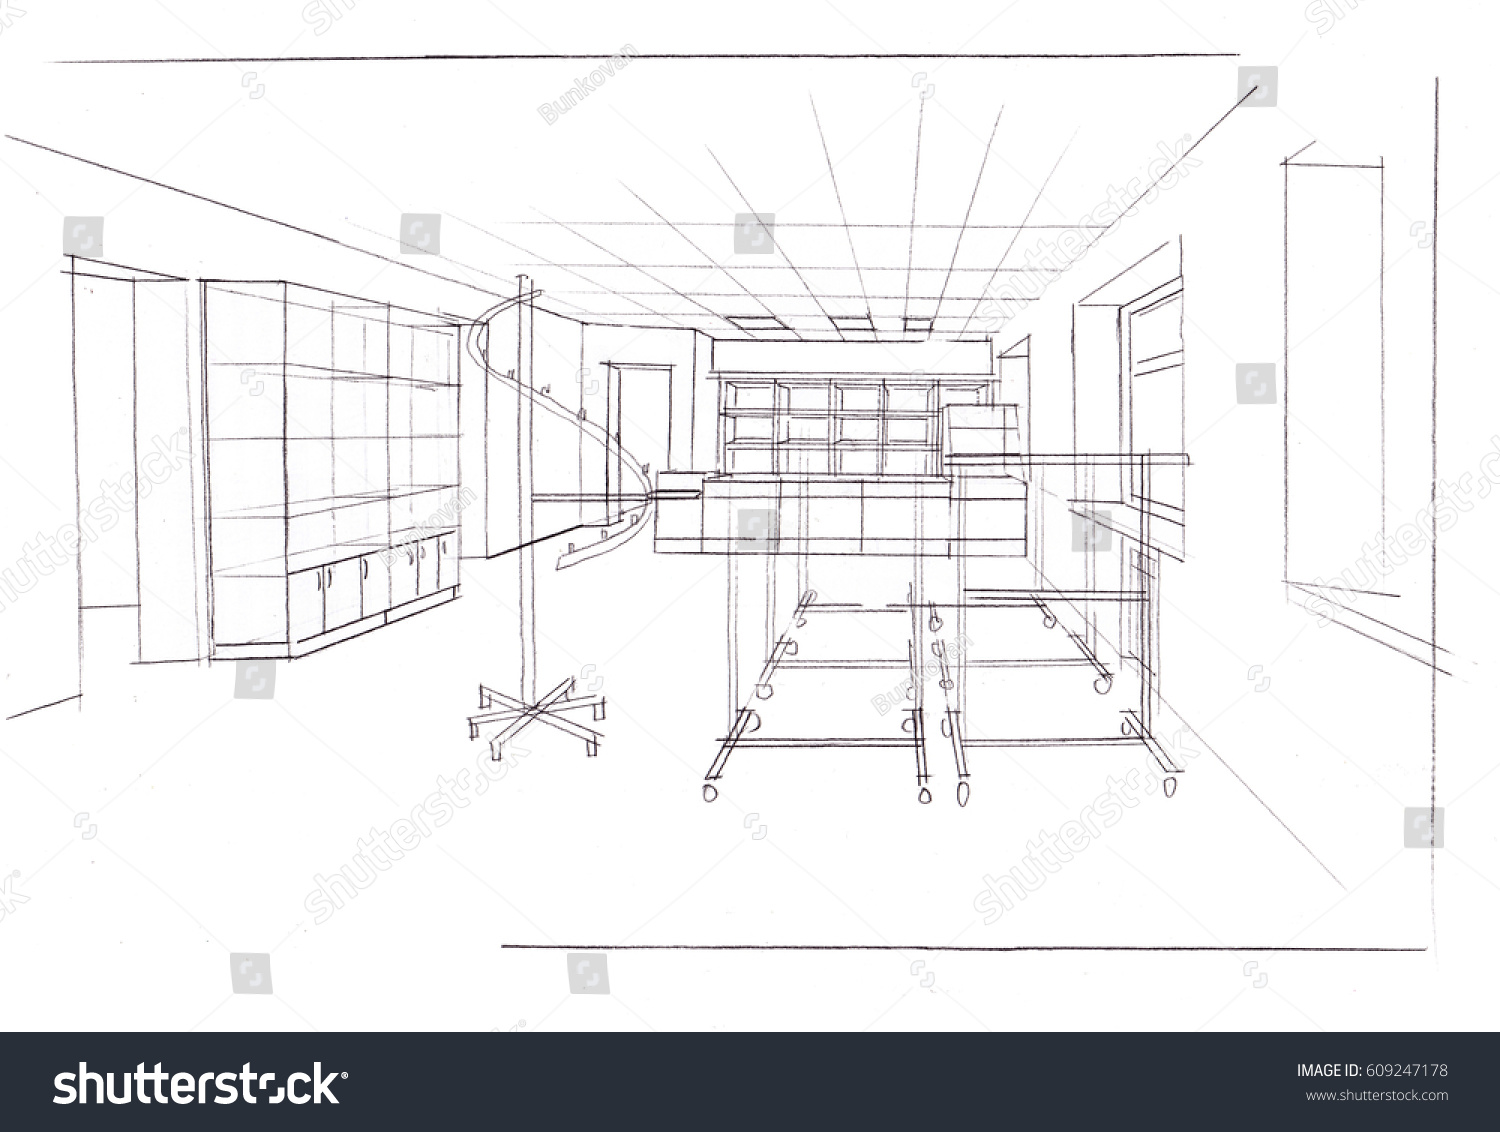 A sketch of the interior of a clothing store the pencil drawing black and